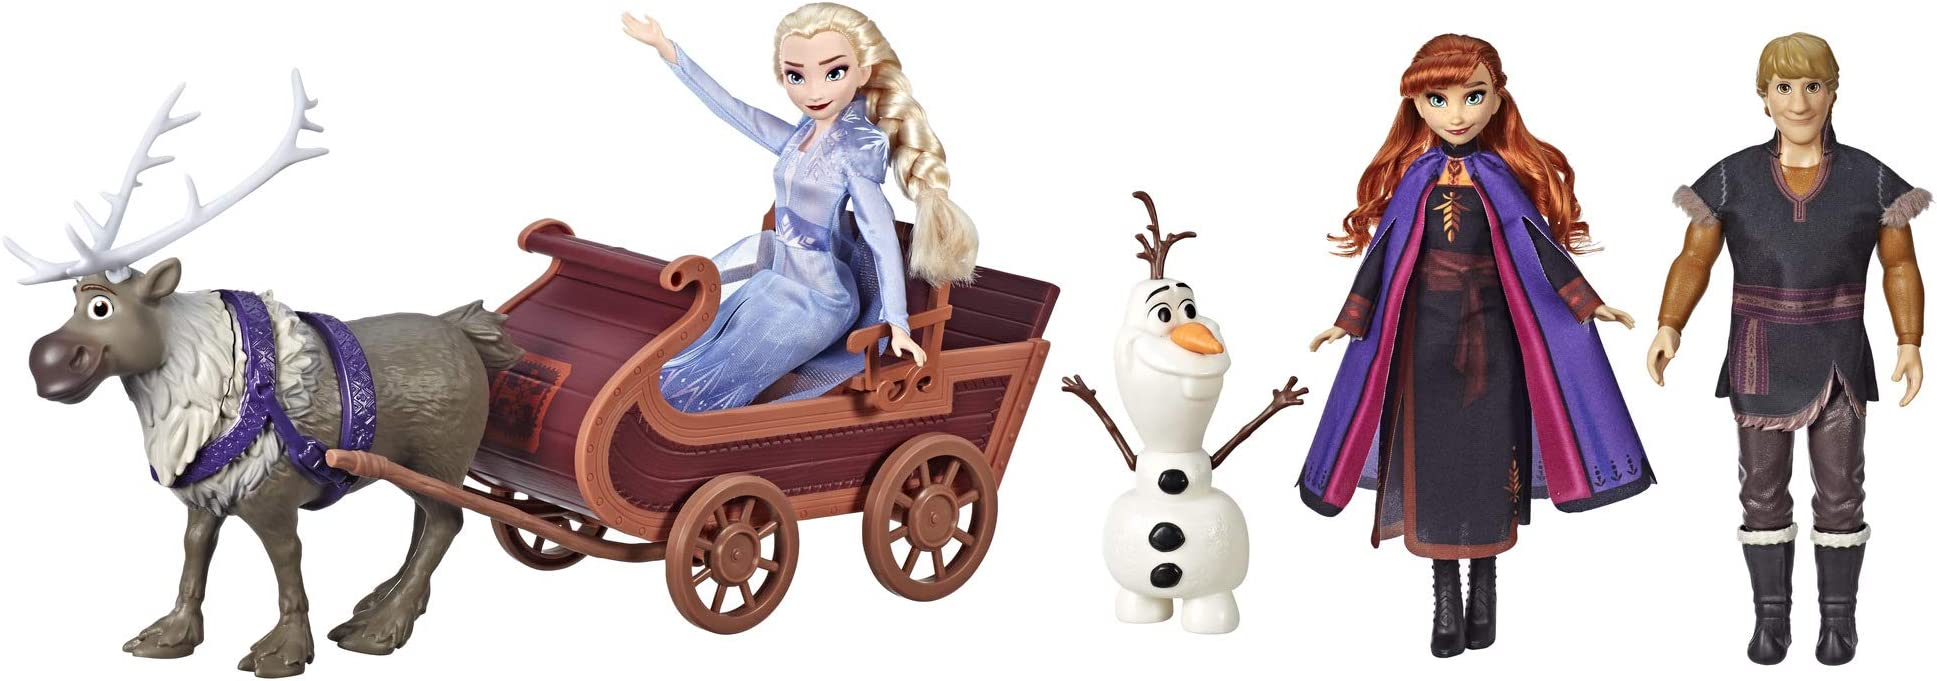 Disney Frozen Sledding Adventures Doll Pack, Includes Elsa, Anna, Kristoff, Olaf, & Sven Fashion Dolls with Sled Toy Inspired by The 2 Movie